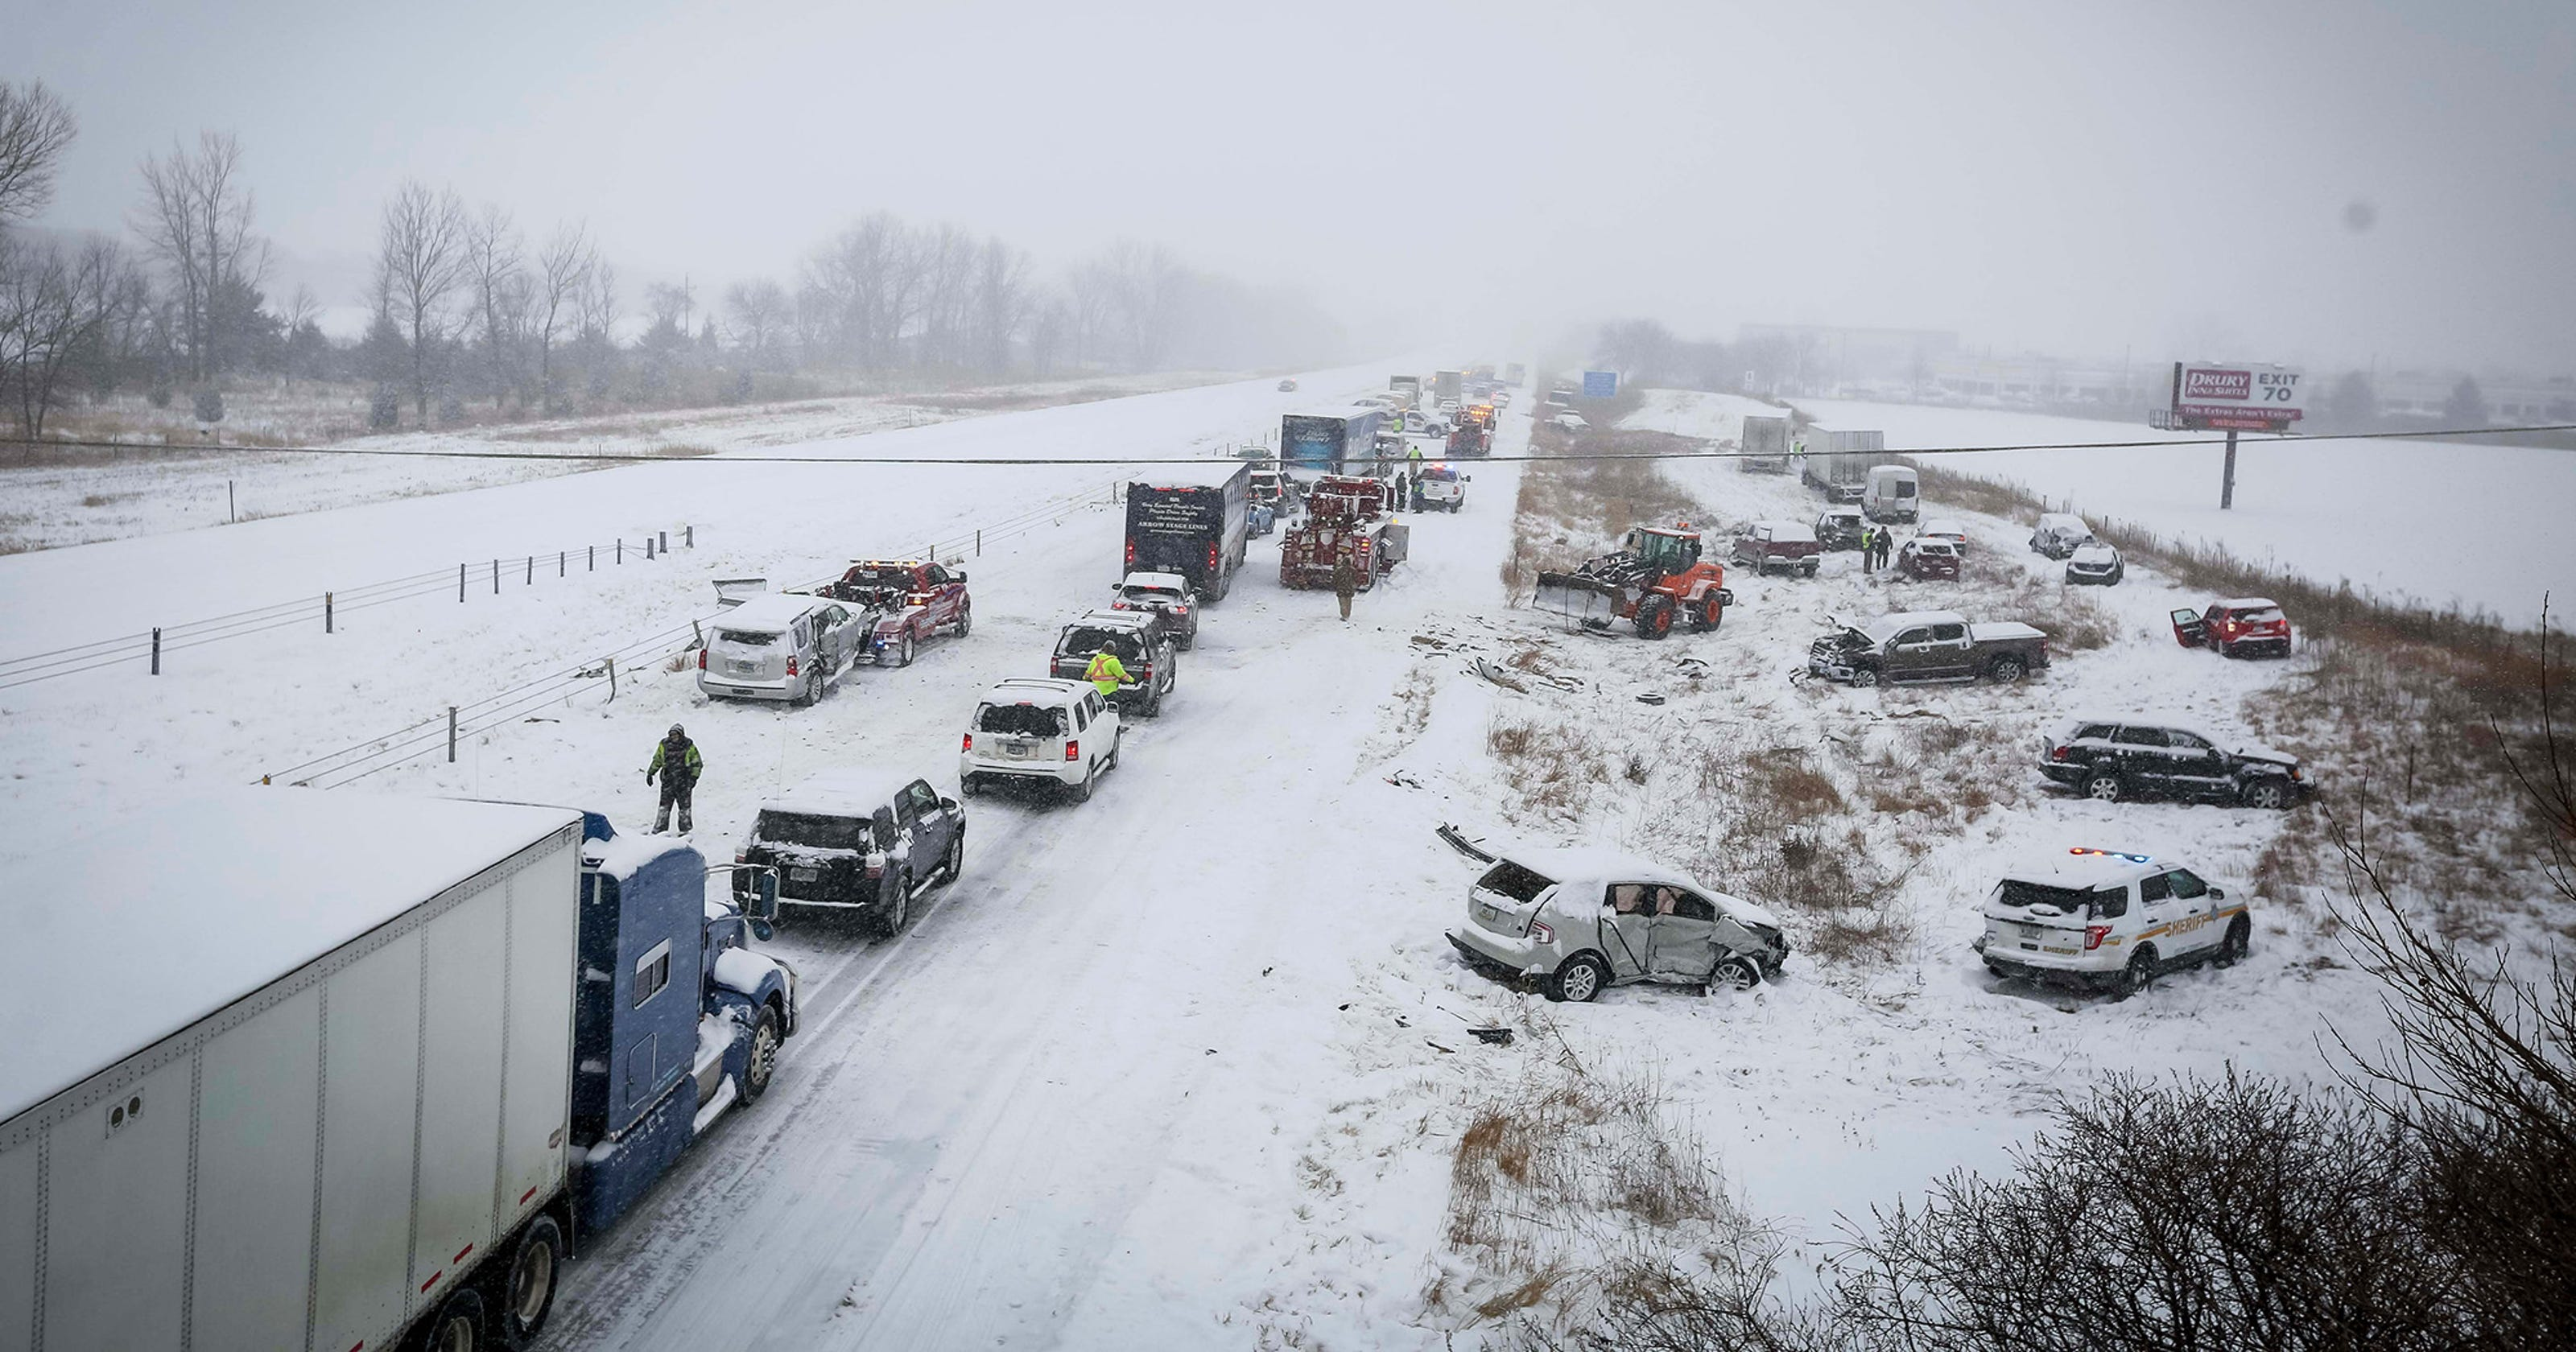 Video captures deadly multi-vehicle pileup in Iowa